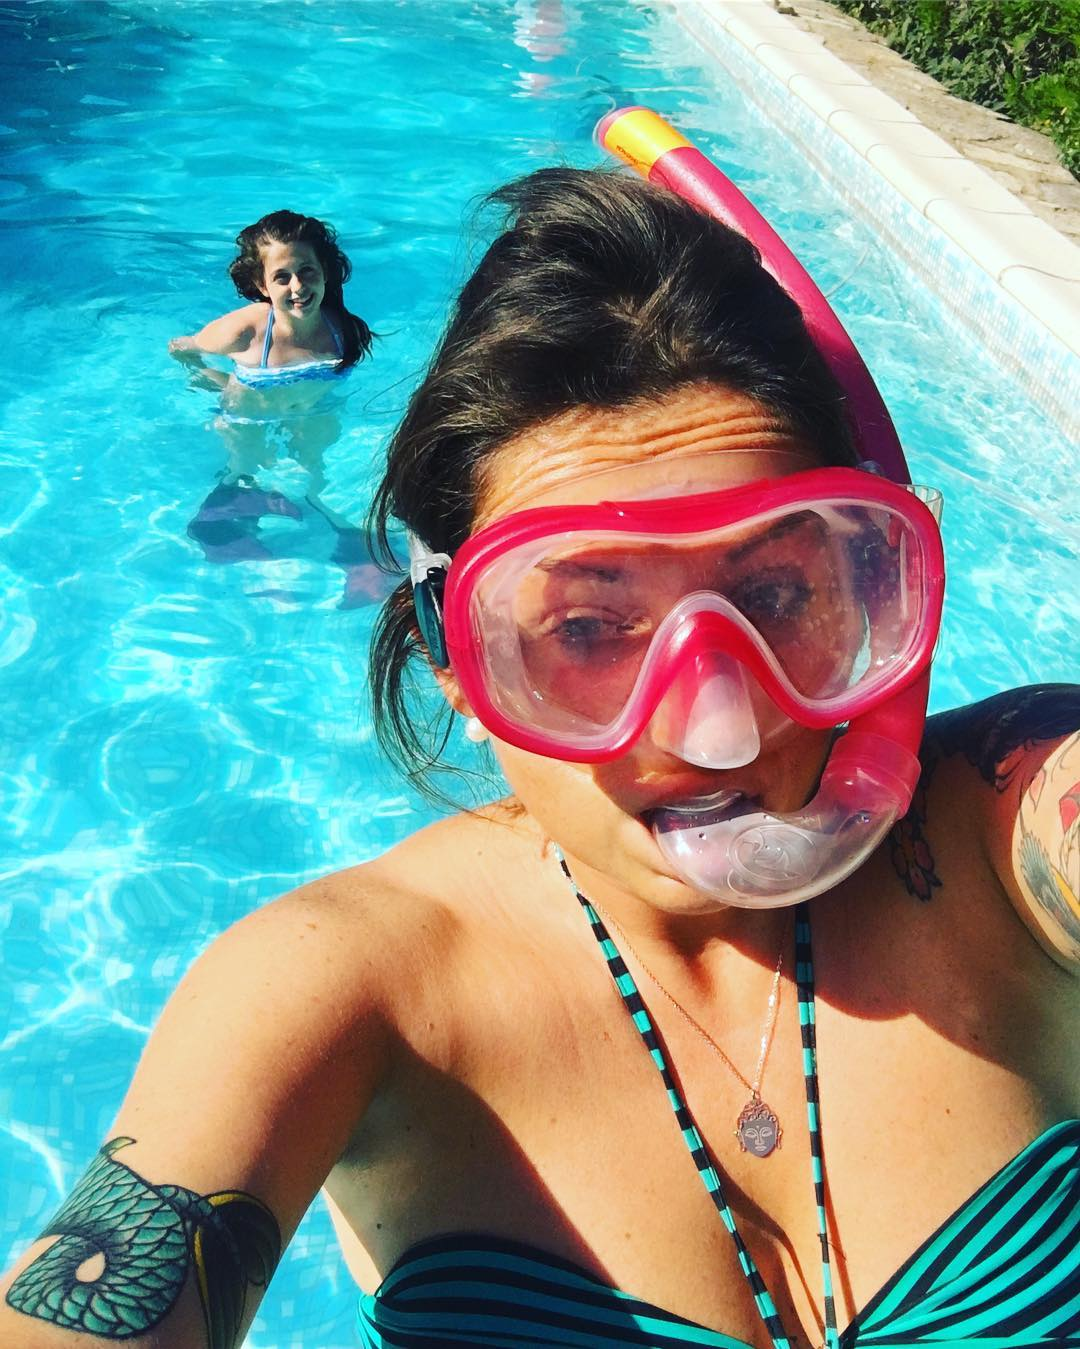 BiSous de nous ??? . ____________  #poolparty #swimmingpool #pintademontpellier #pouleparty #montpellier #travelblog #travelphotography #blogtravel #blogvoyage